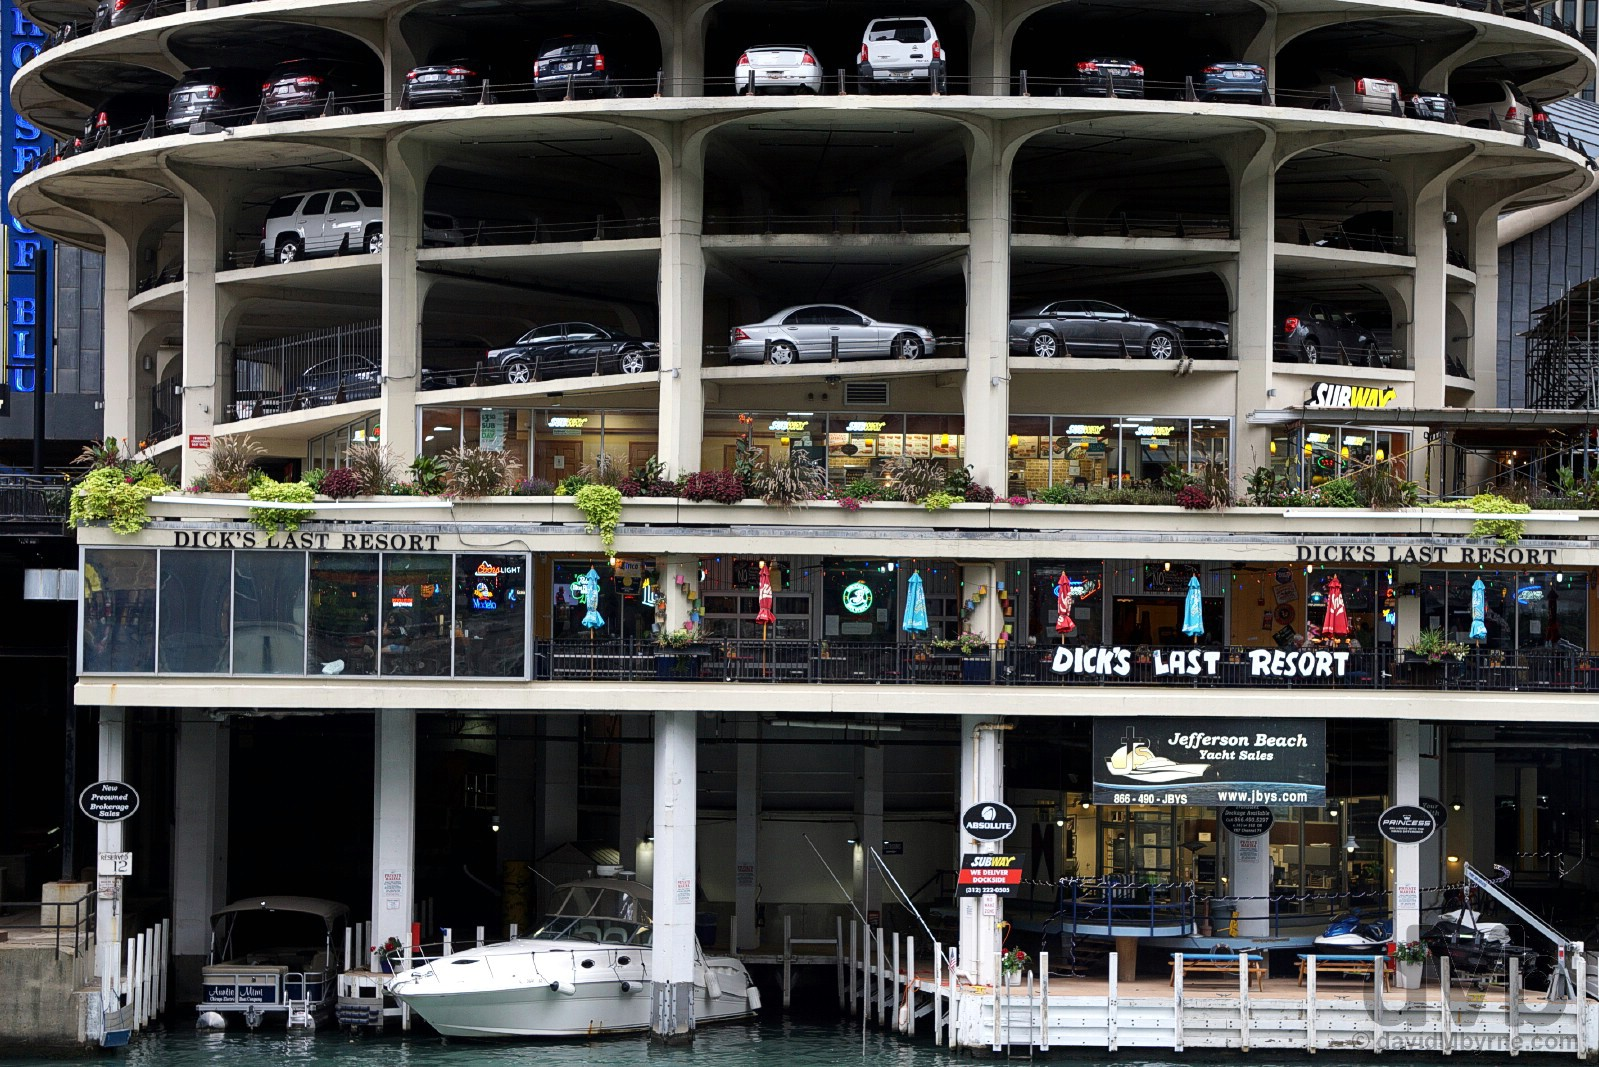 Dick's Last Resort of Marina City on the Chicago River in downtown Chicago, Illinois, USA. October 2, 2016.